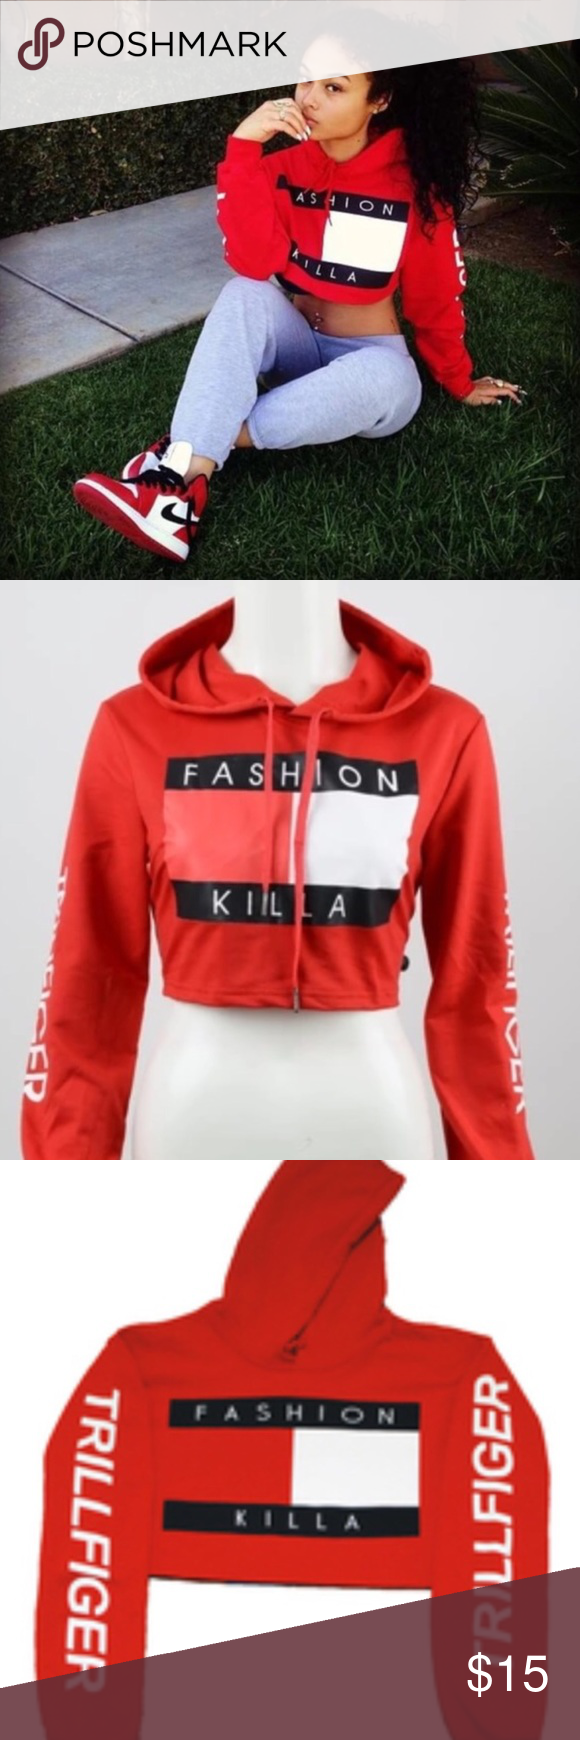 900fea2af7a6d2 'Fashion Killa' Crop Hoodie Brand new in packaging Tommy Hilfiger Tops Crop  Tops